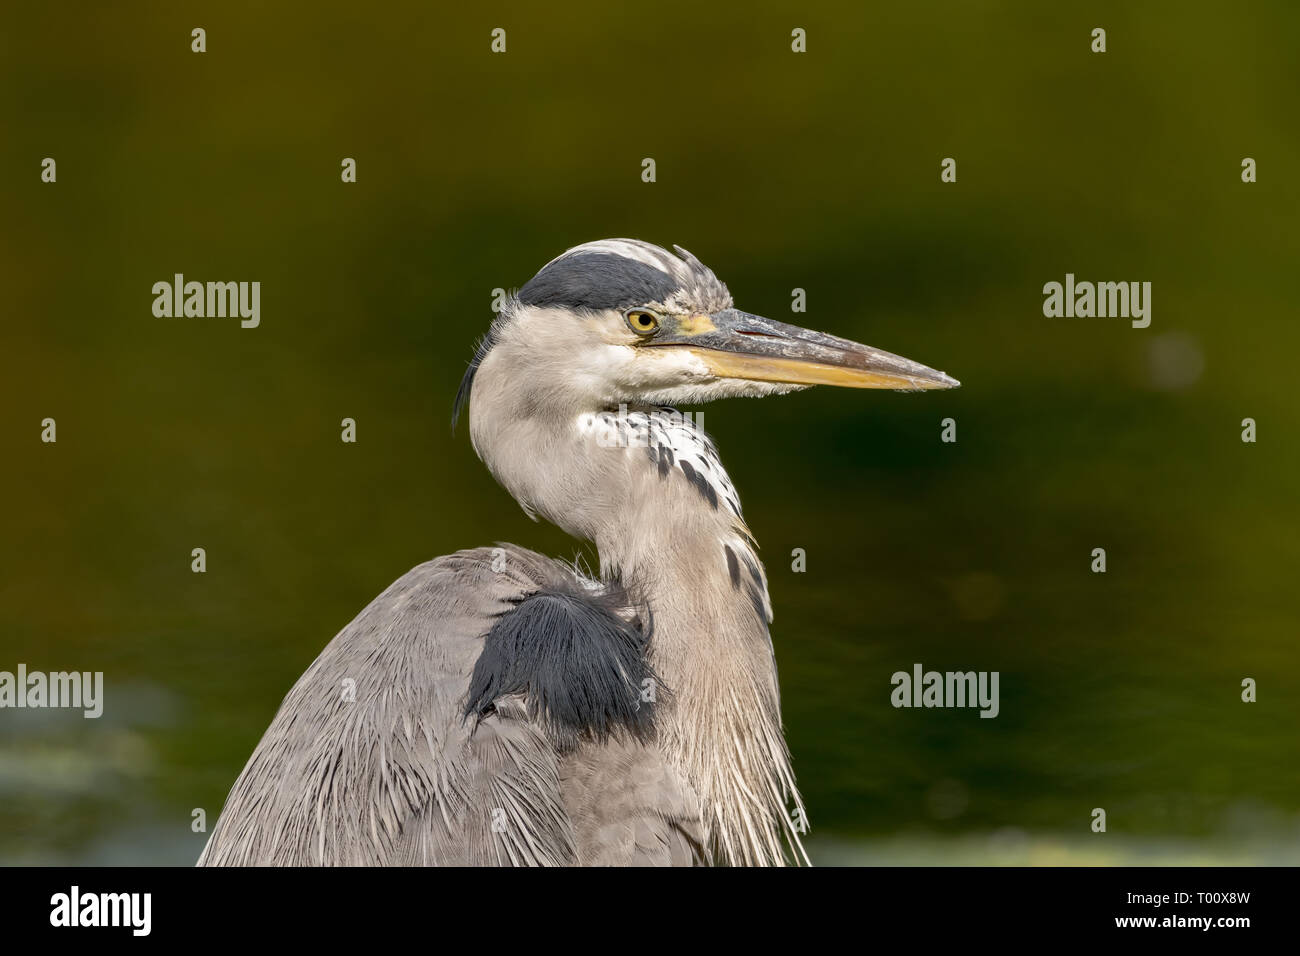 Confidence is key in succes. This grey heron certainly knows it. - Stock Image